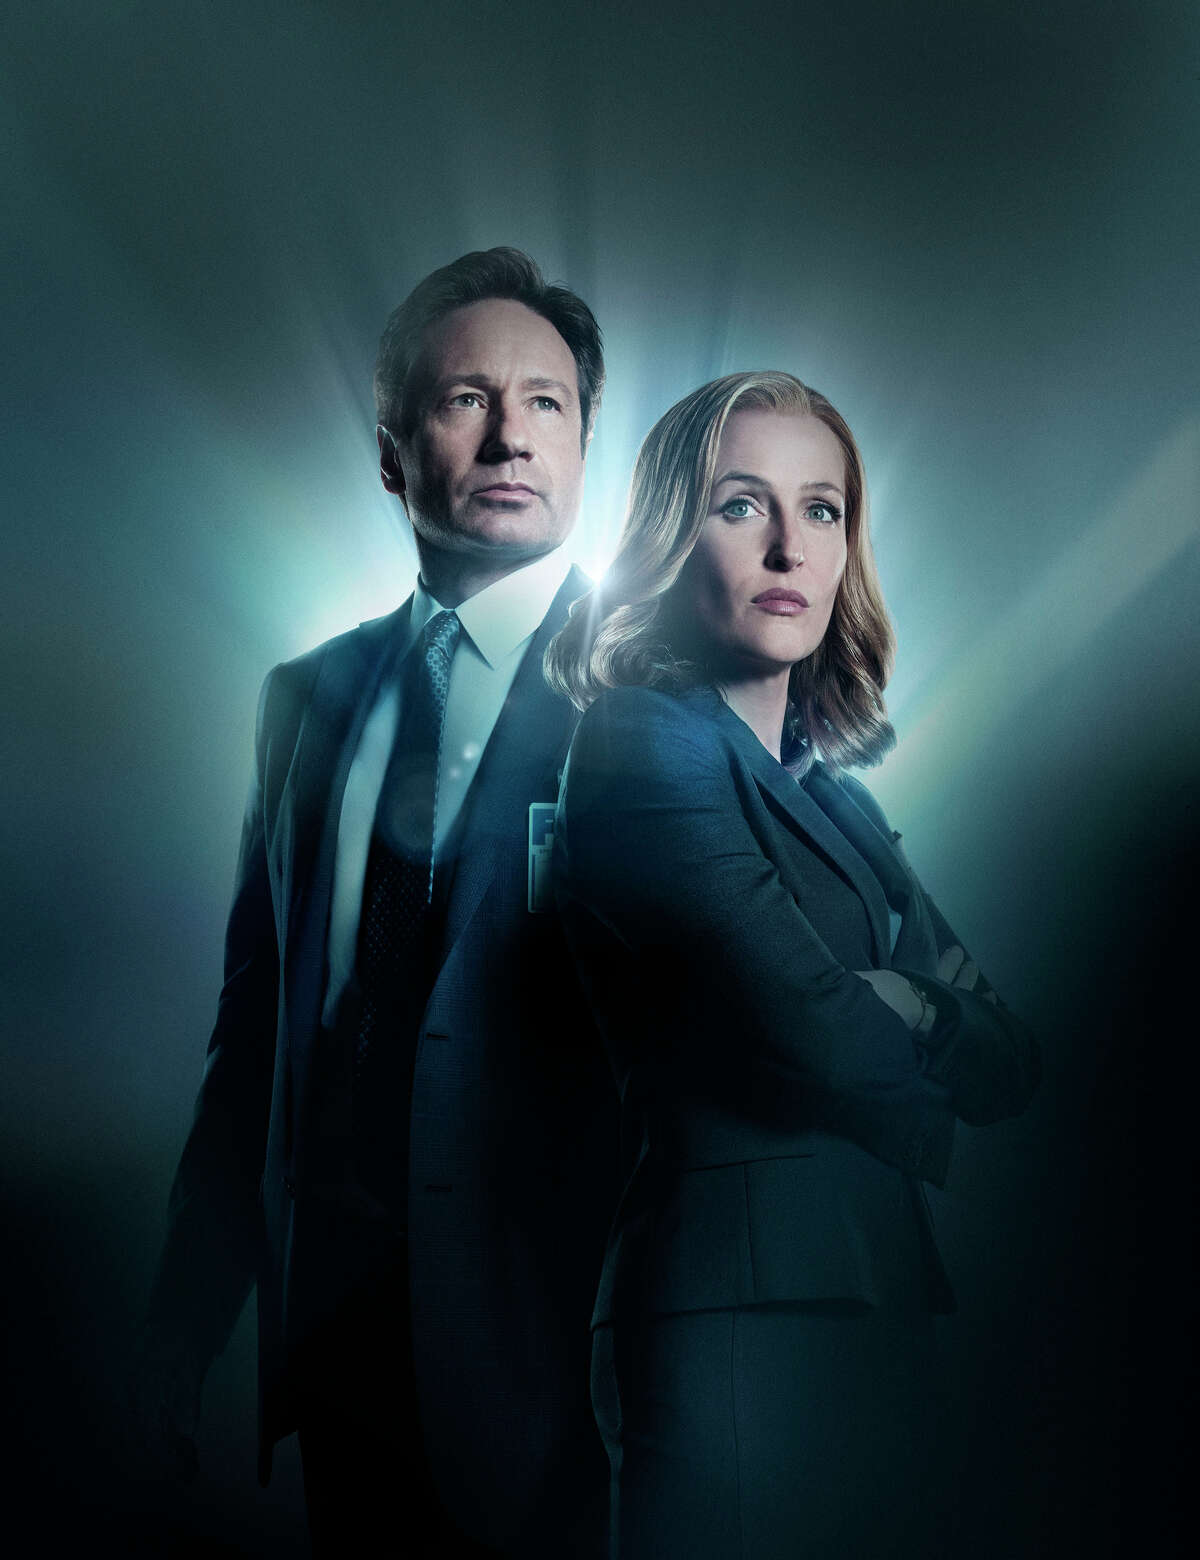 The X-Files : The 90s series, 'The X-Files' was a simple enough premise: a pair of FBI agents, one a believer, one a skeptic, investigate paranormal cases. But the stars' chemistry, combined with some of the scariest storytelling seen on television made this series an instant horror classic. Fox rebooted the series in 2017 with the original stars. All nine original seasons are available for streaming on Hulu. You can rent or buy the 10th season on Amazon, Vudu or Microsoft. (Fox)